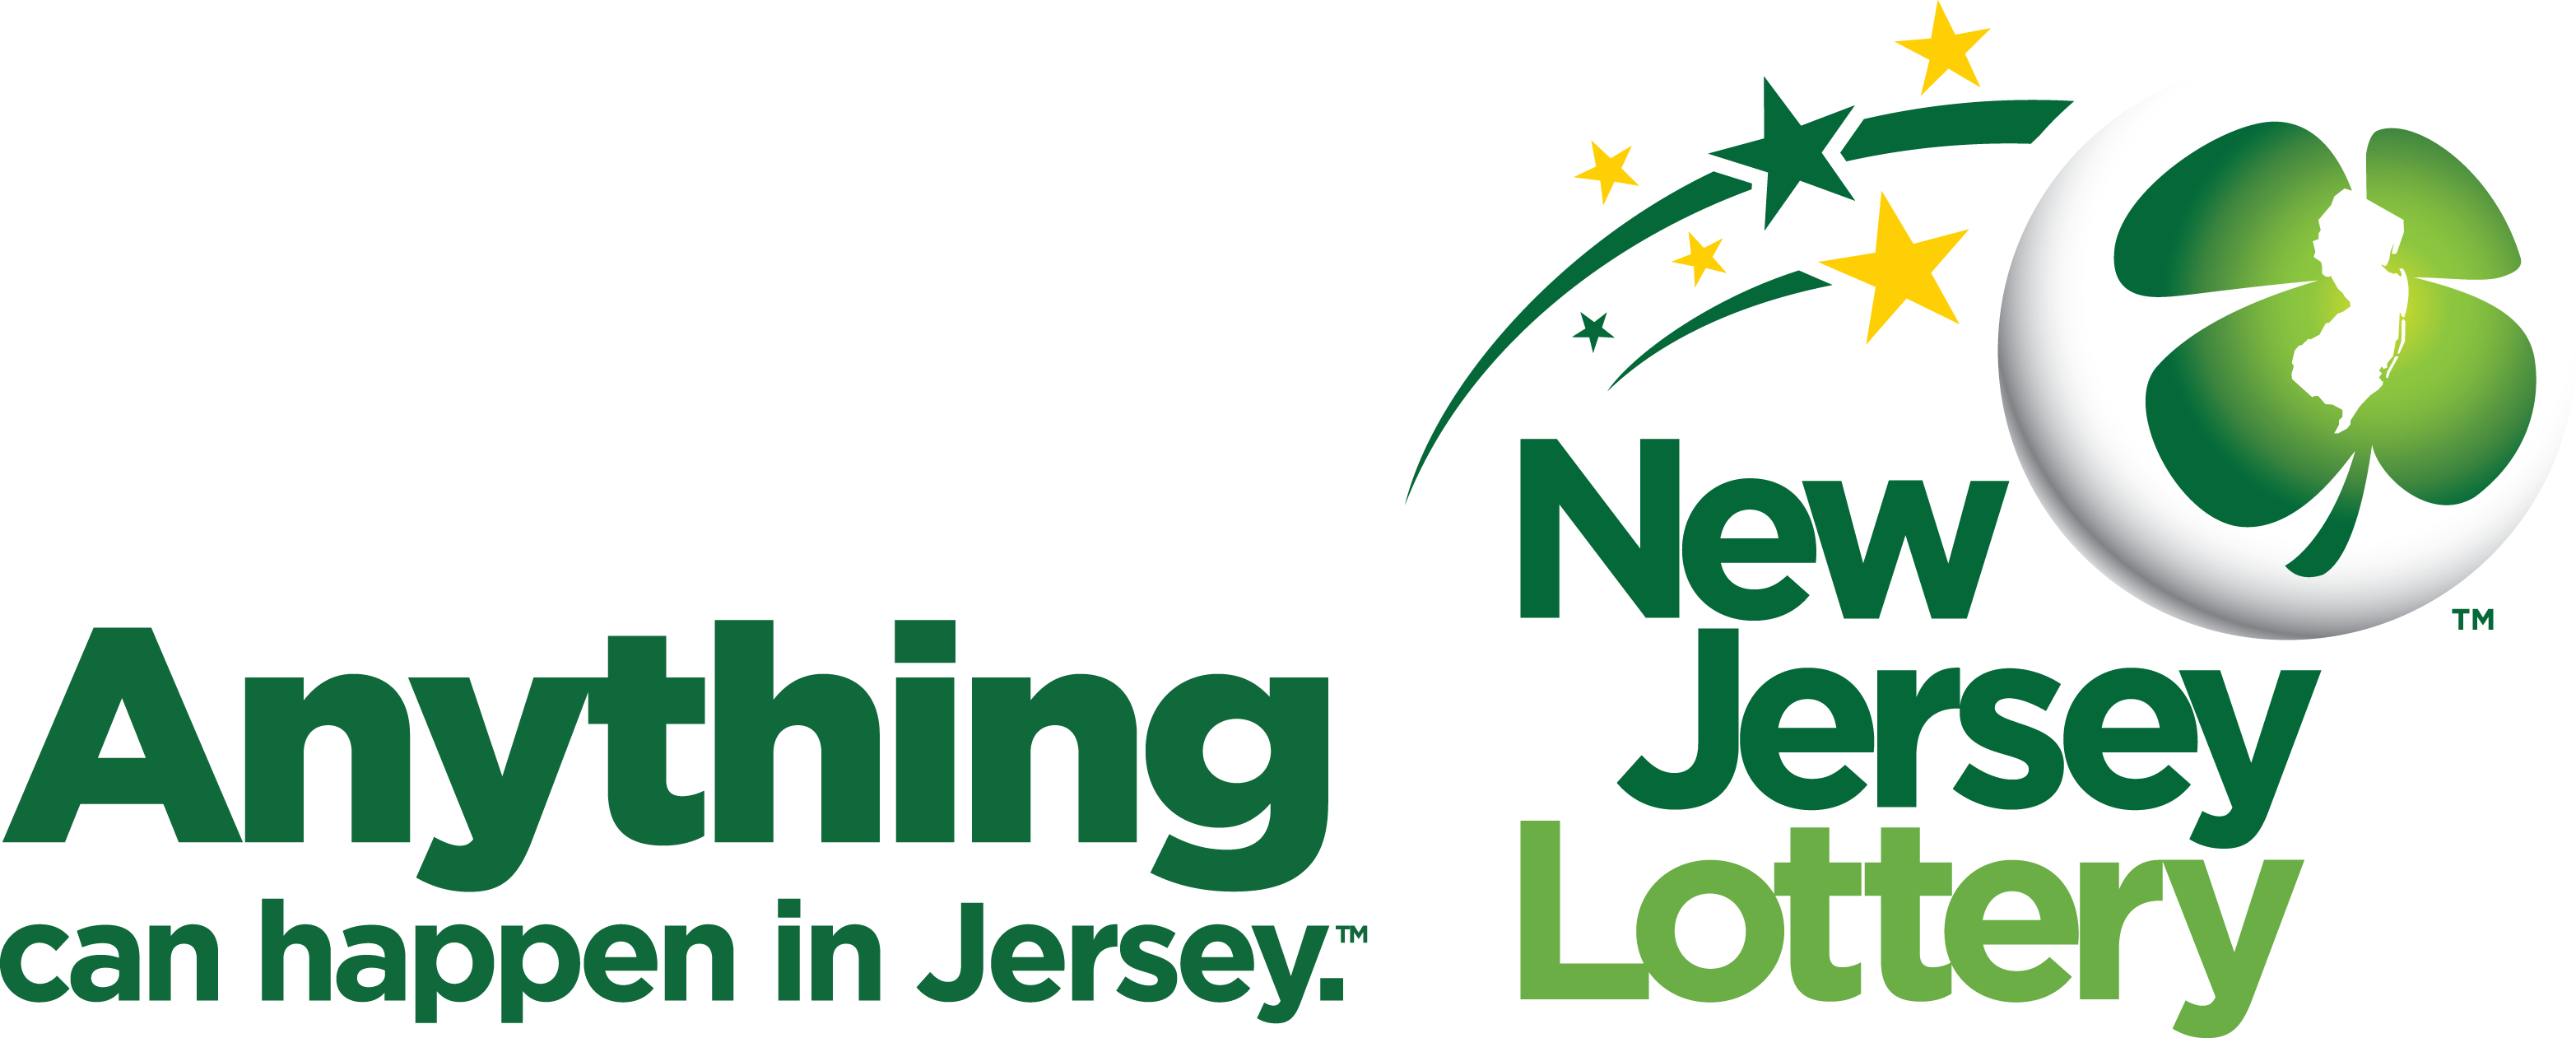 Drawing lottery. Watch the new jersey